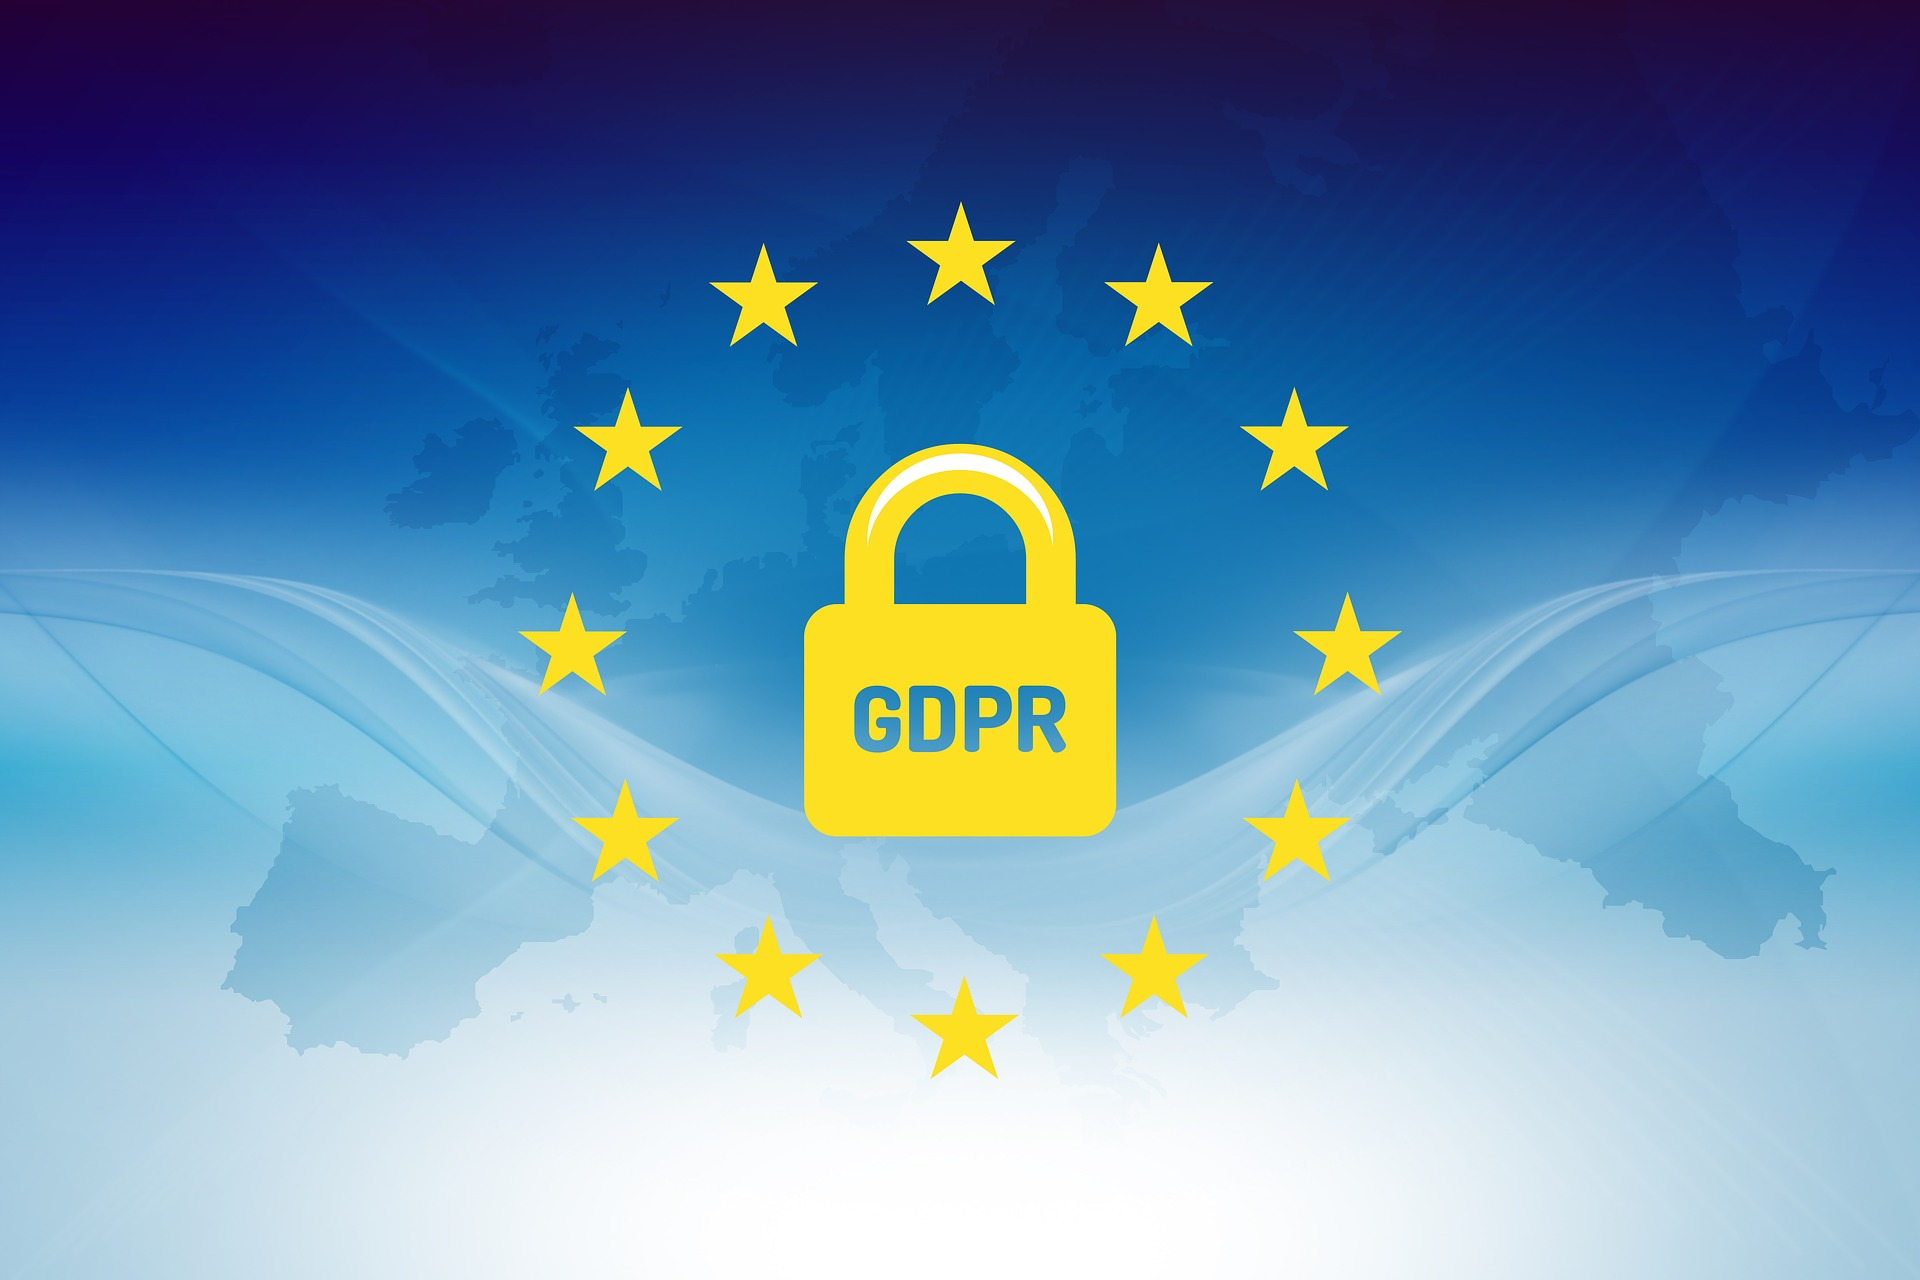 GDPR: How Europe's new privacy law is reshaping data security